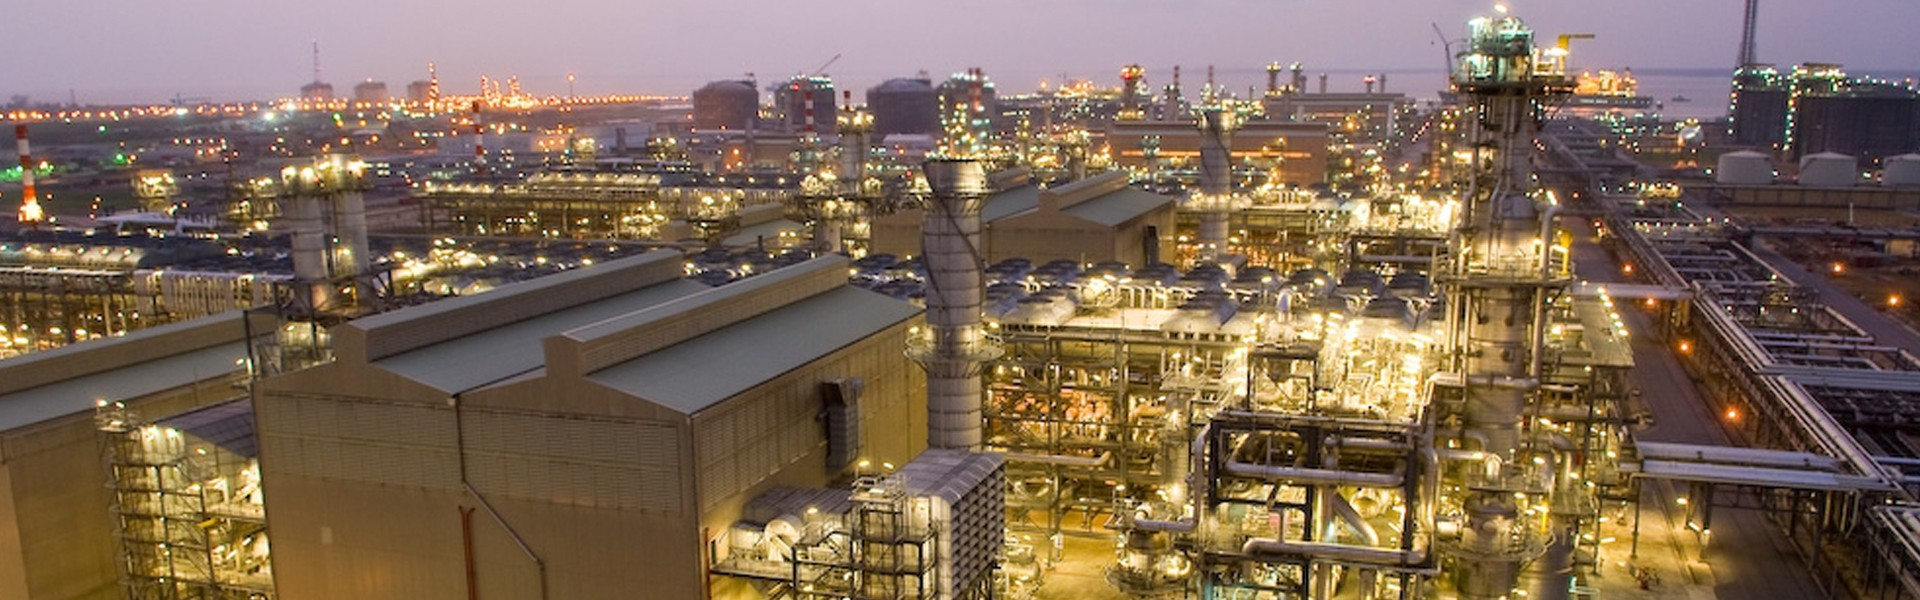 William Hare - Oil - Gas - Petrochemical Projects - William Hare